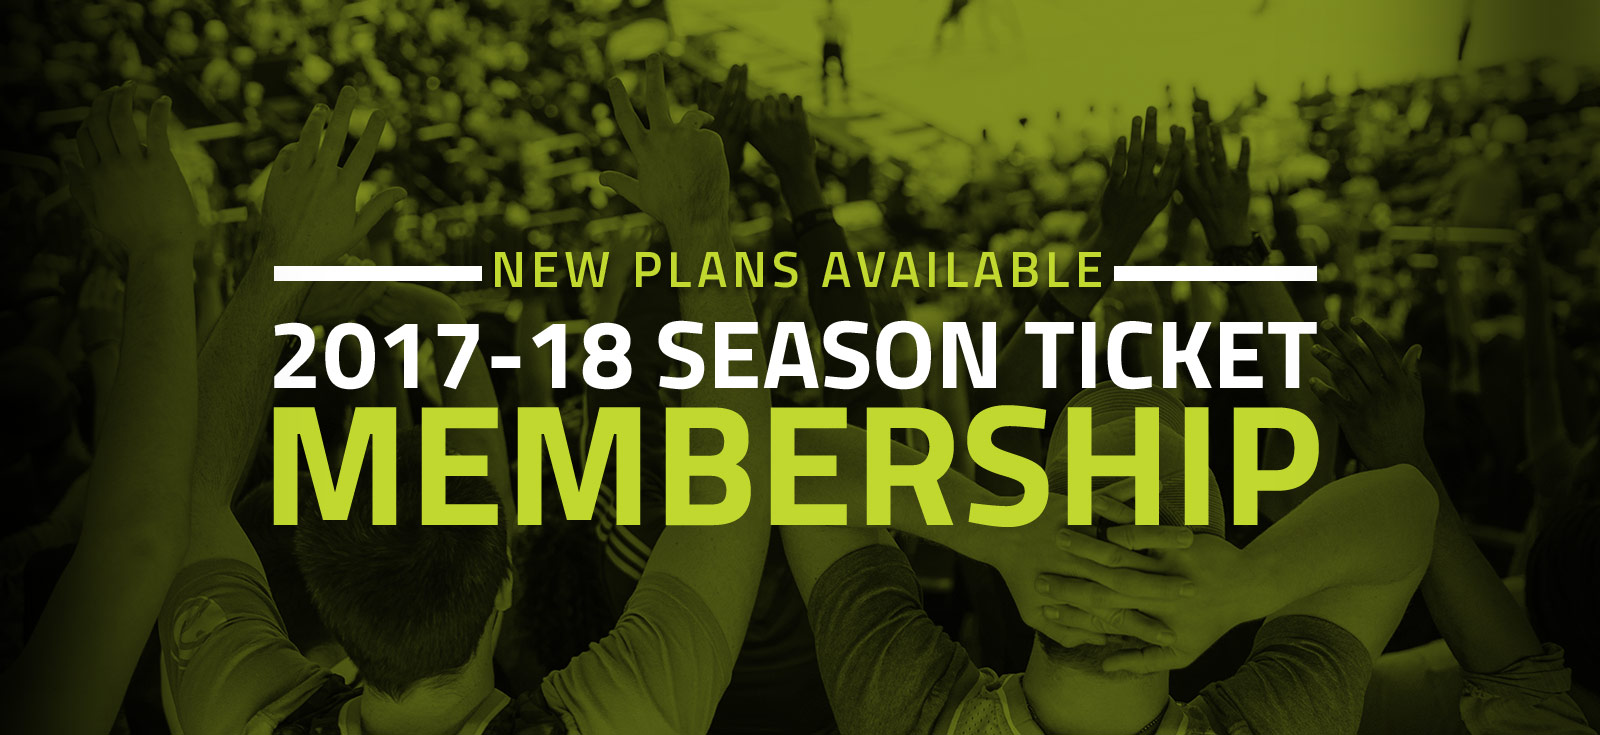 Get your membership plan now!